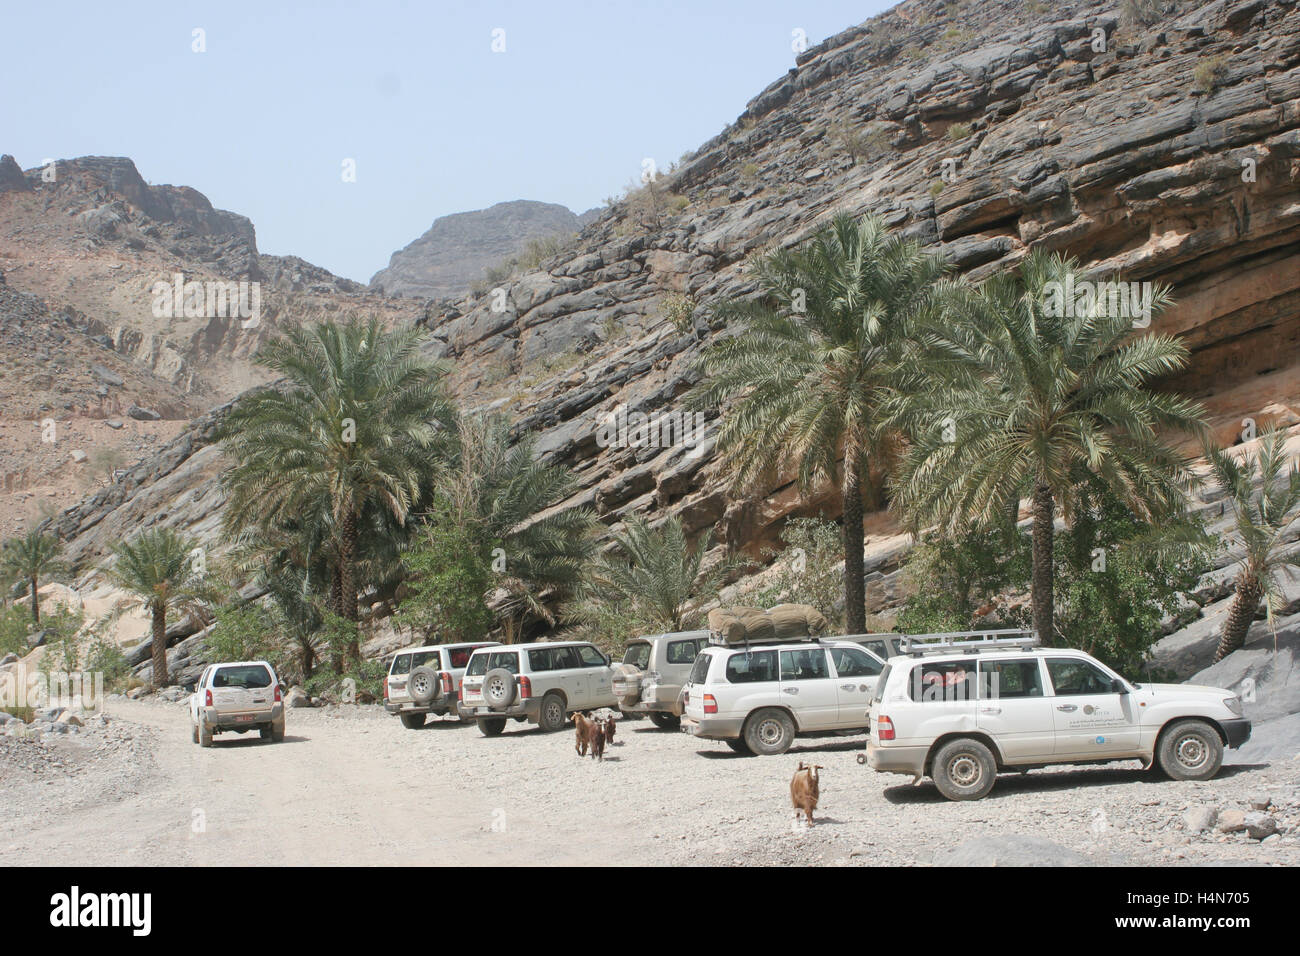 Tourist 4x4 vehicles parked in a gorge in central Oman. Wild goats wander amongst the palm trees - Stock Image